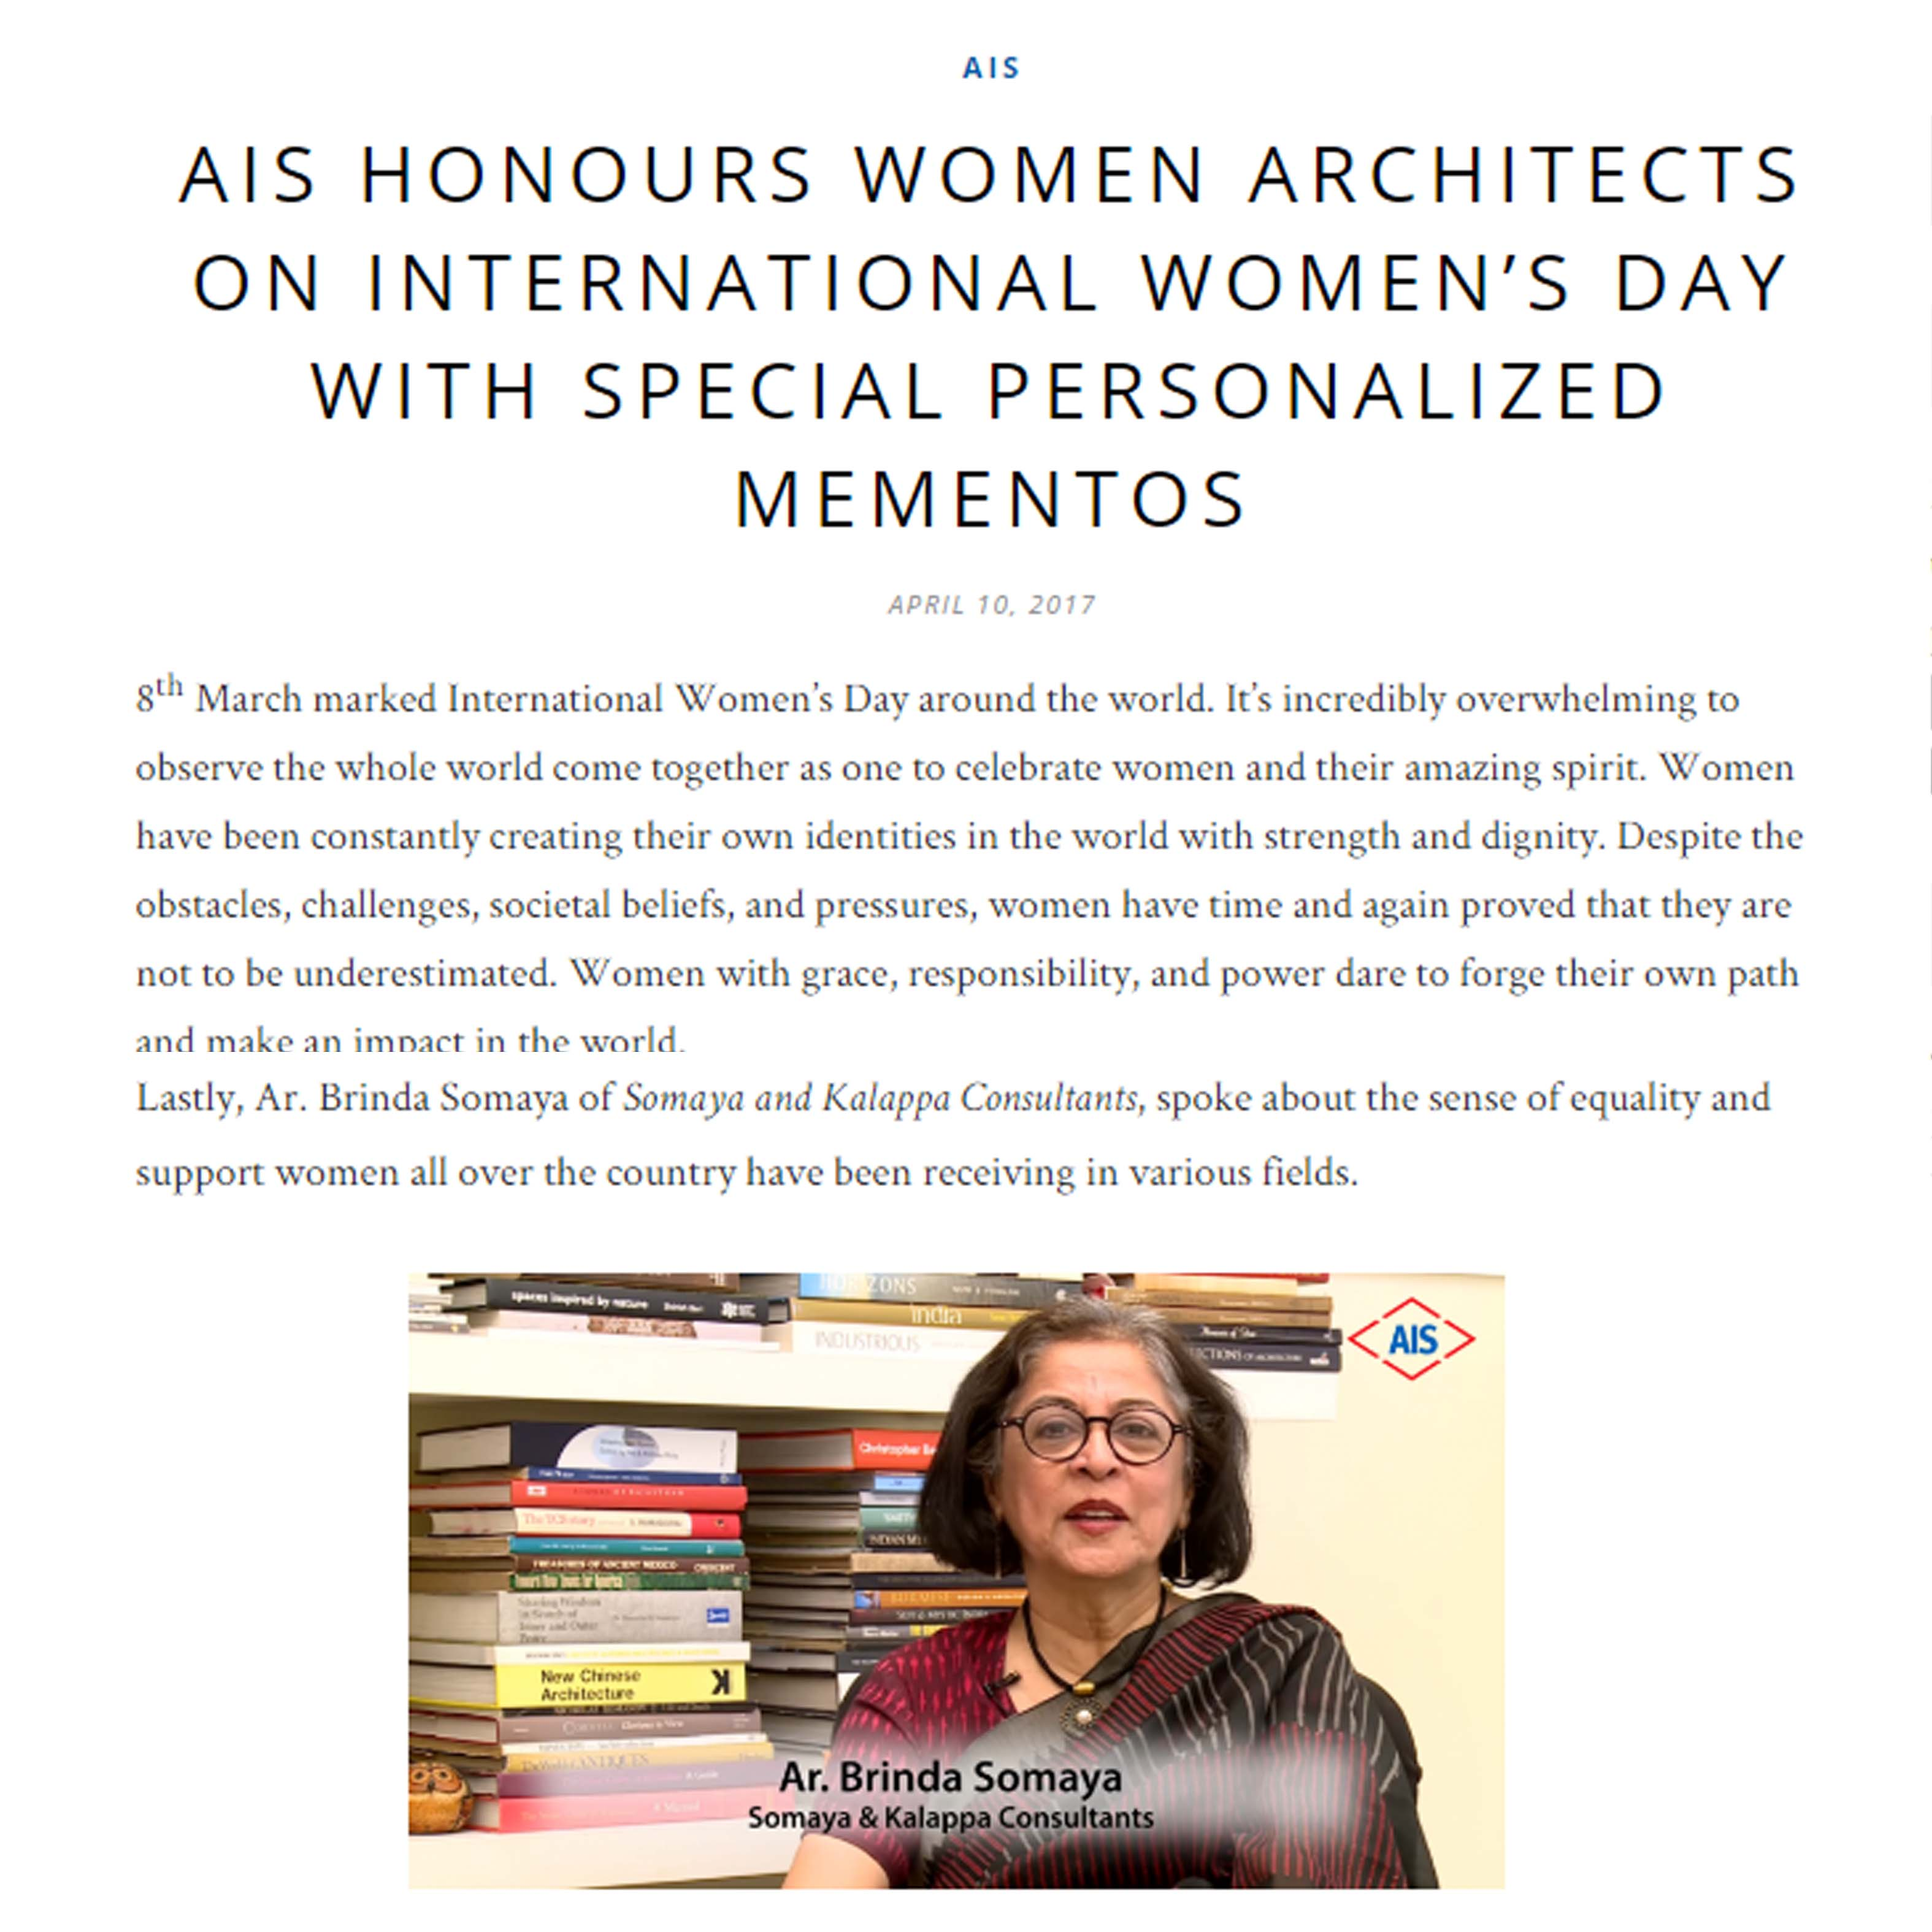 AIS Glass - AIS Honours Women Architects on International Women's Day with Special Personalized Mementos, 10th April 2017